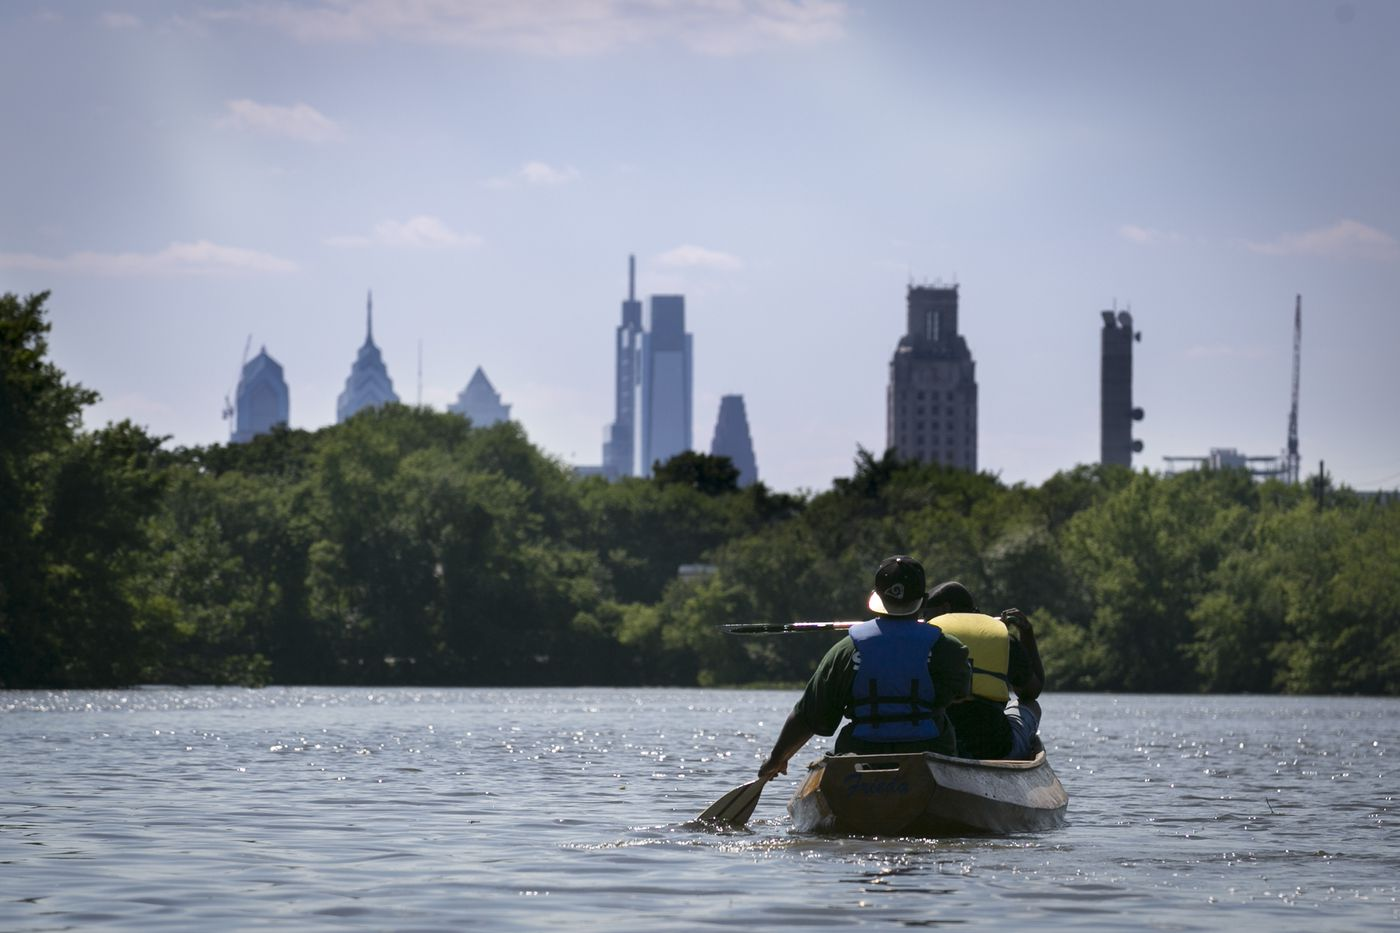 'Within this city … there is this beautiful river.' South Jersey canoe program aims to expand horizons and change lives